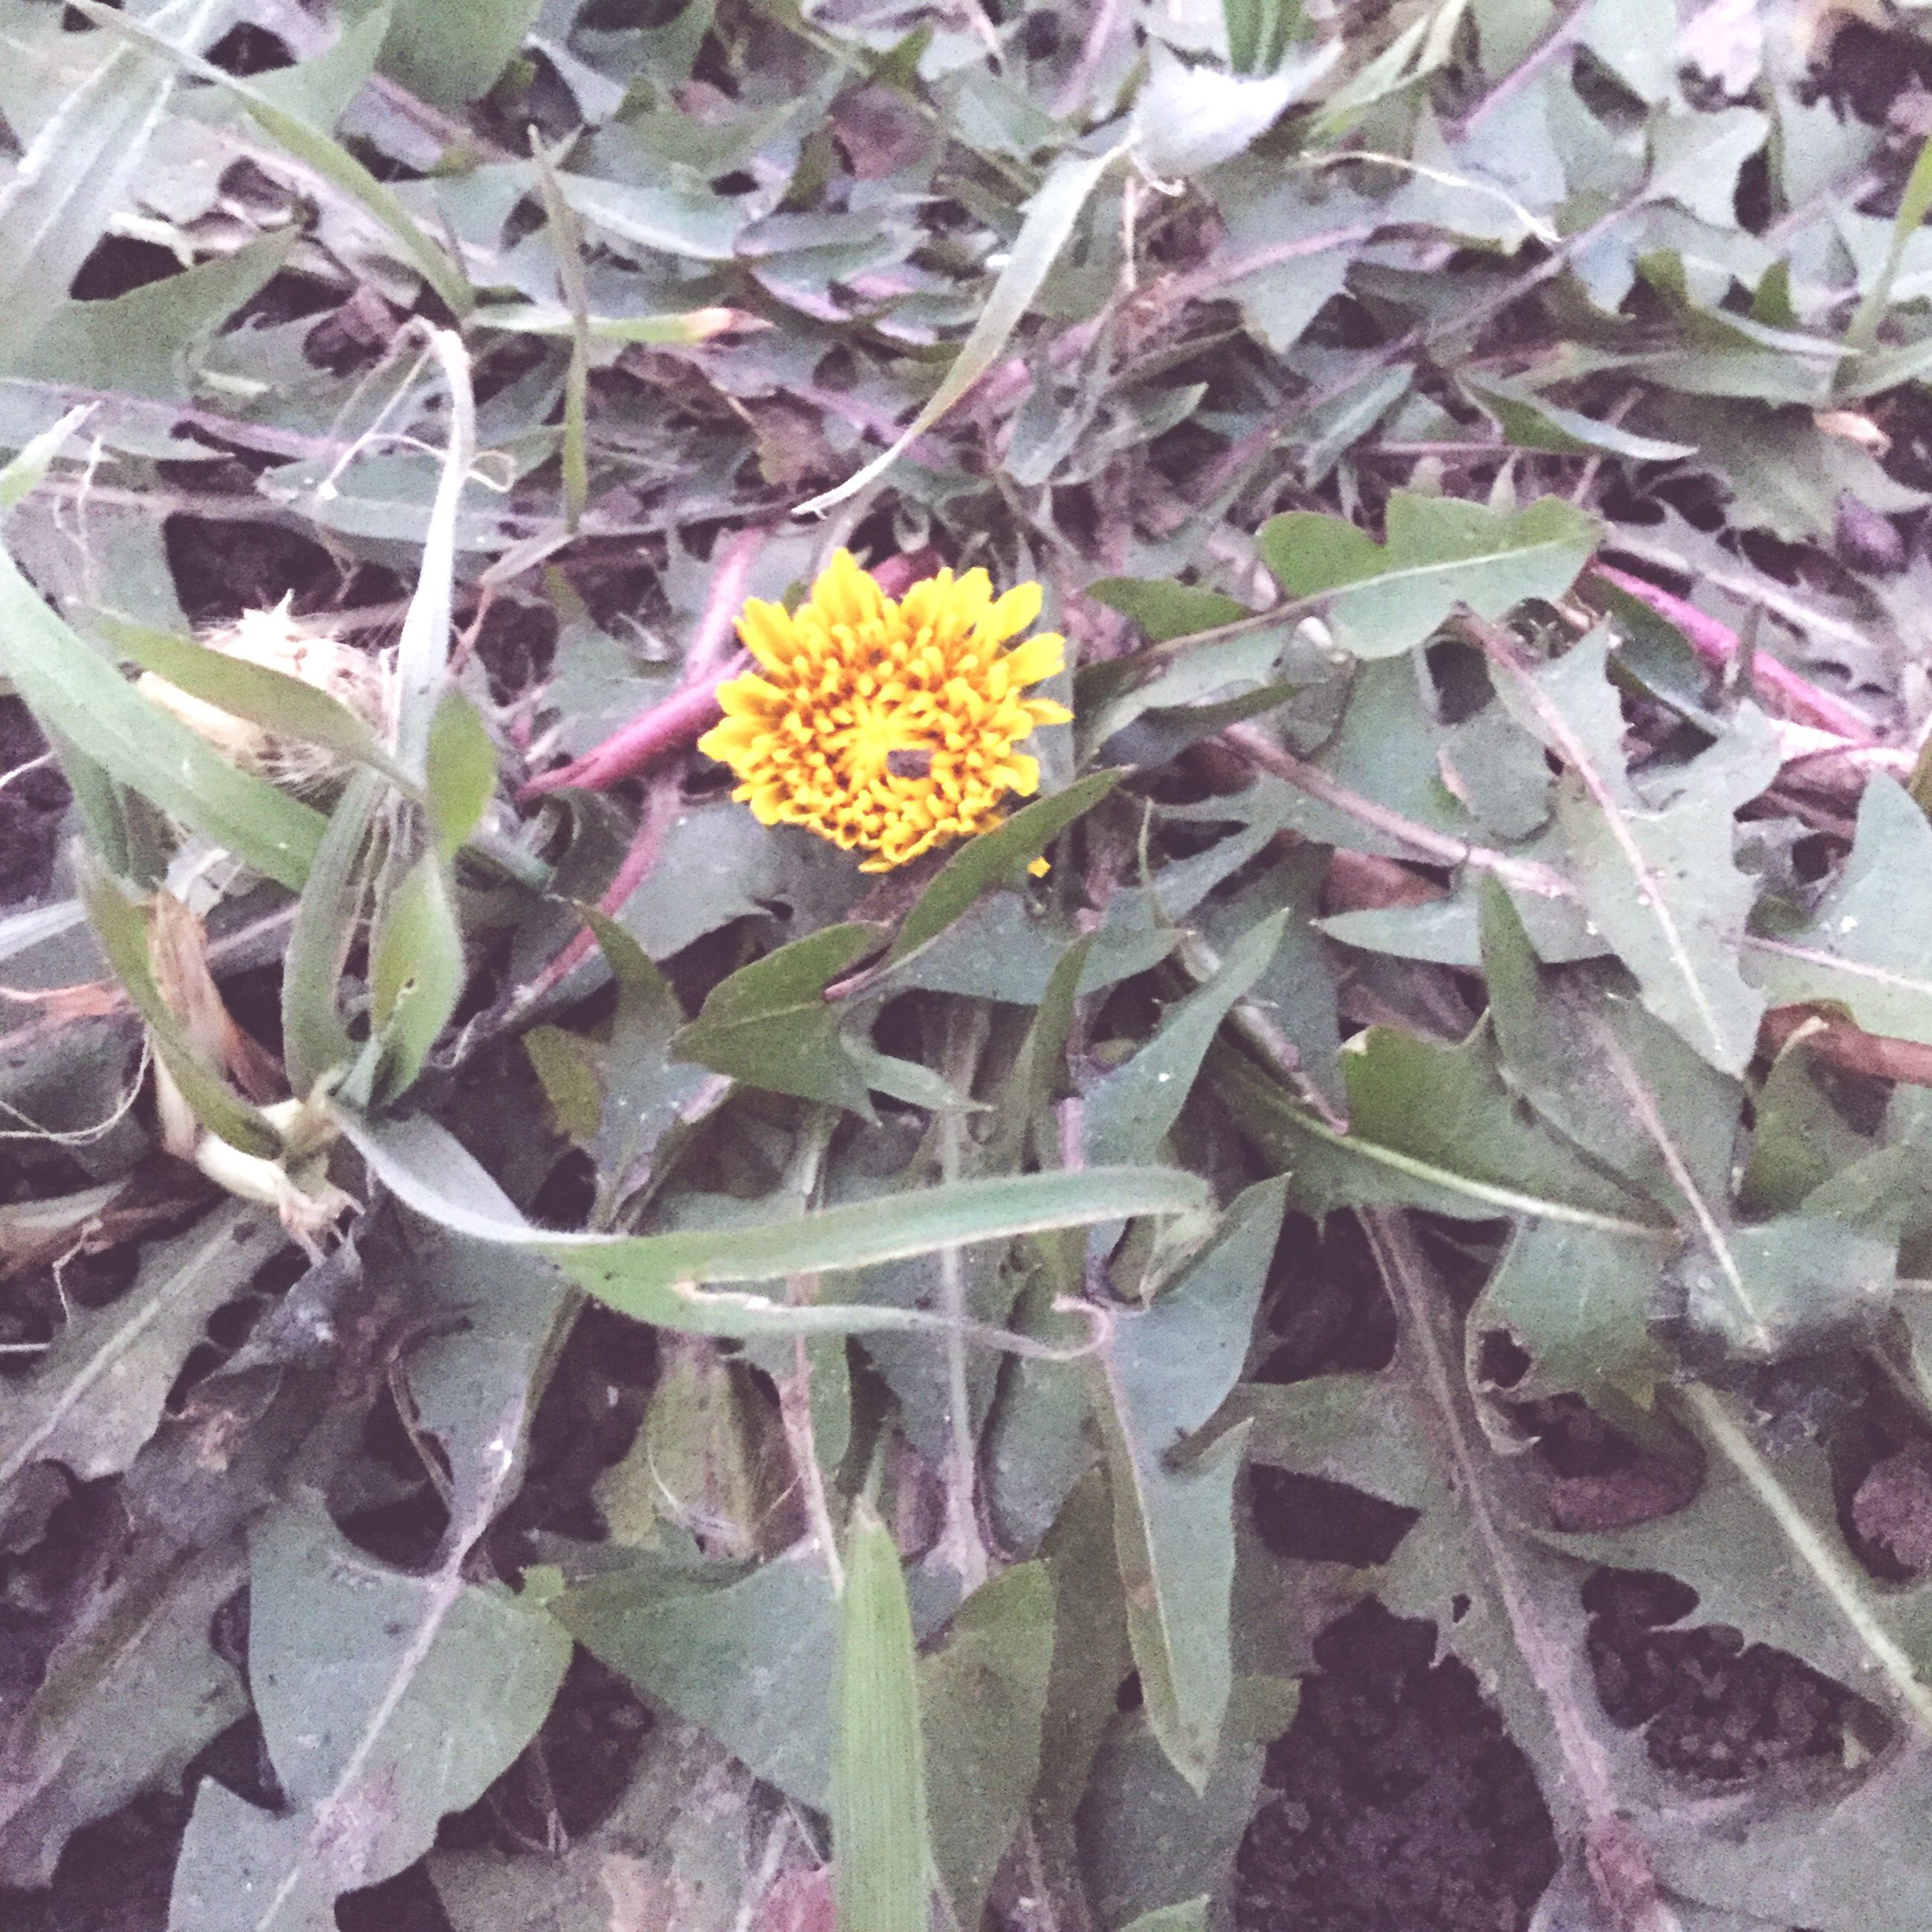 flower, fragility, freshness, petal, flower head, plant, beauty in nature, nature, high angle view, growth, yellow, leaf, blooming, outdoors, no people, pollen, close-up, day